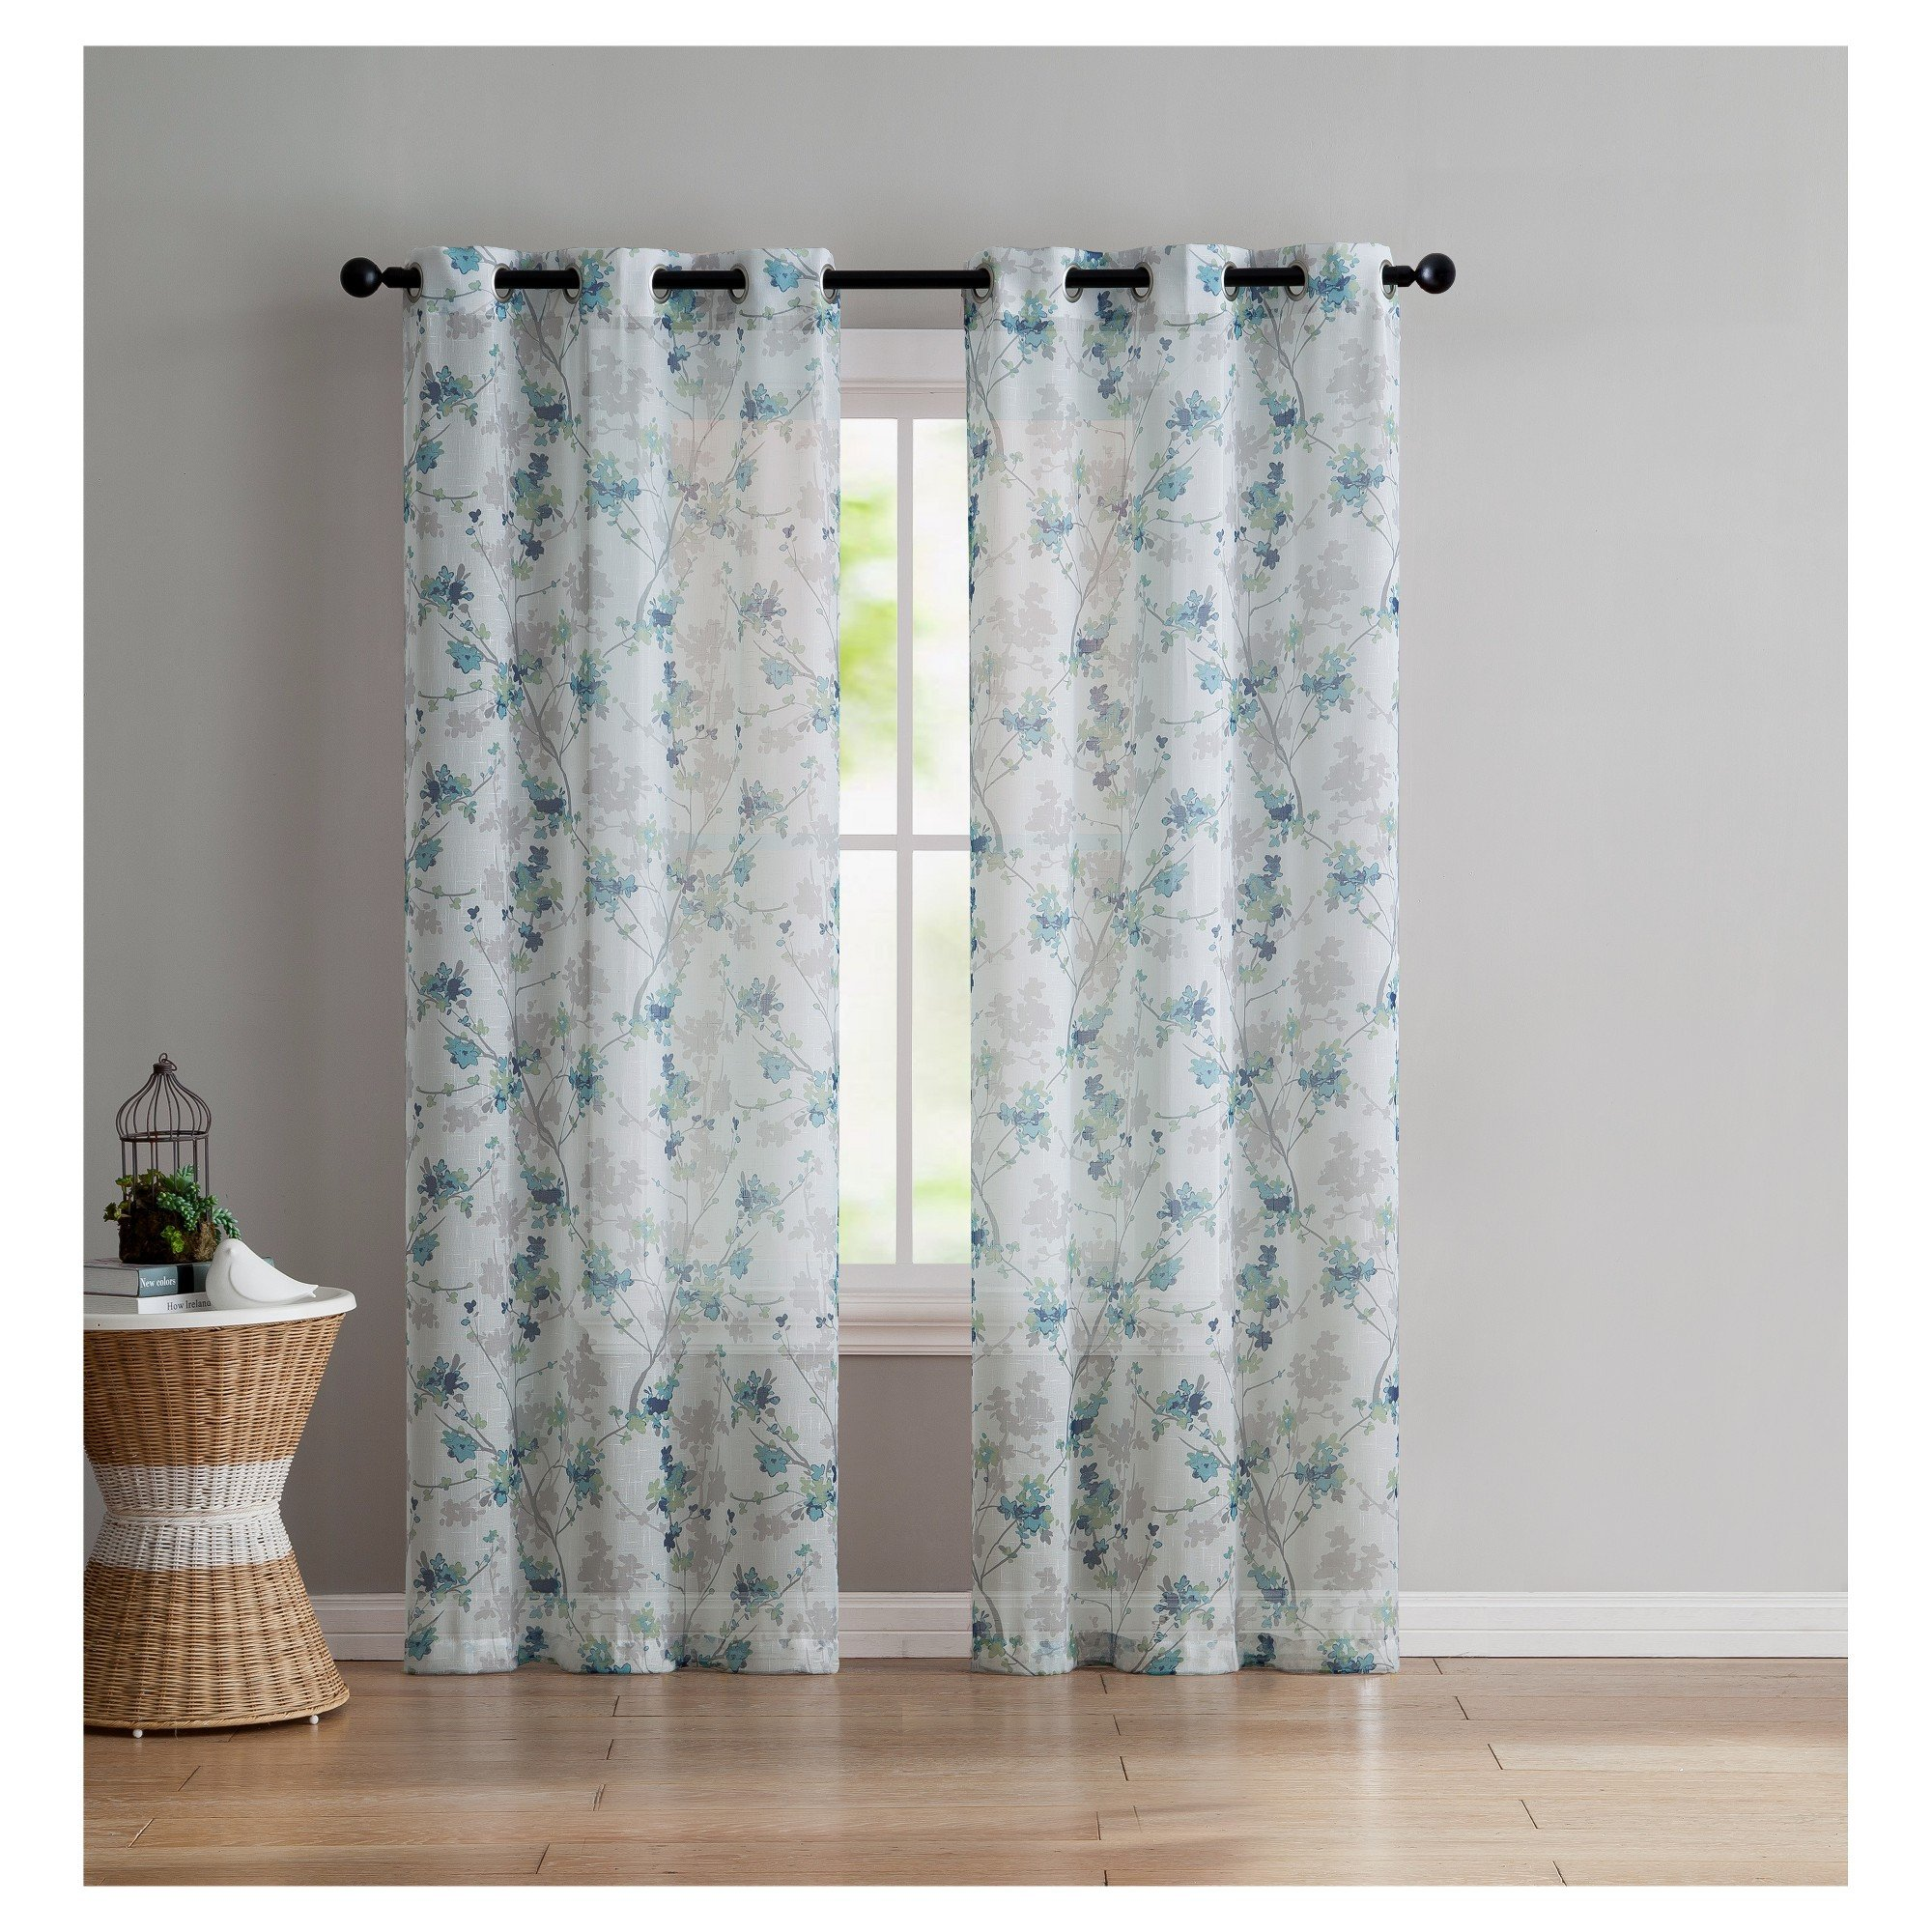 "Bedroom Curtains and Drapes Luxury Jasmine Semi Window Sheer Aqua 38""x96"" Vcny Home Blue"